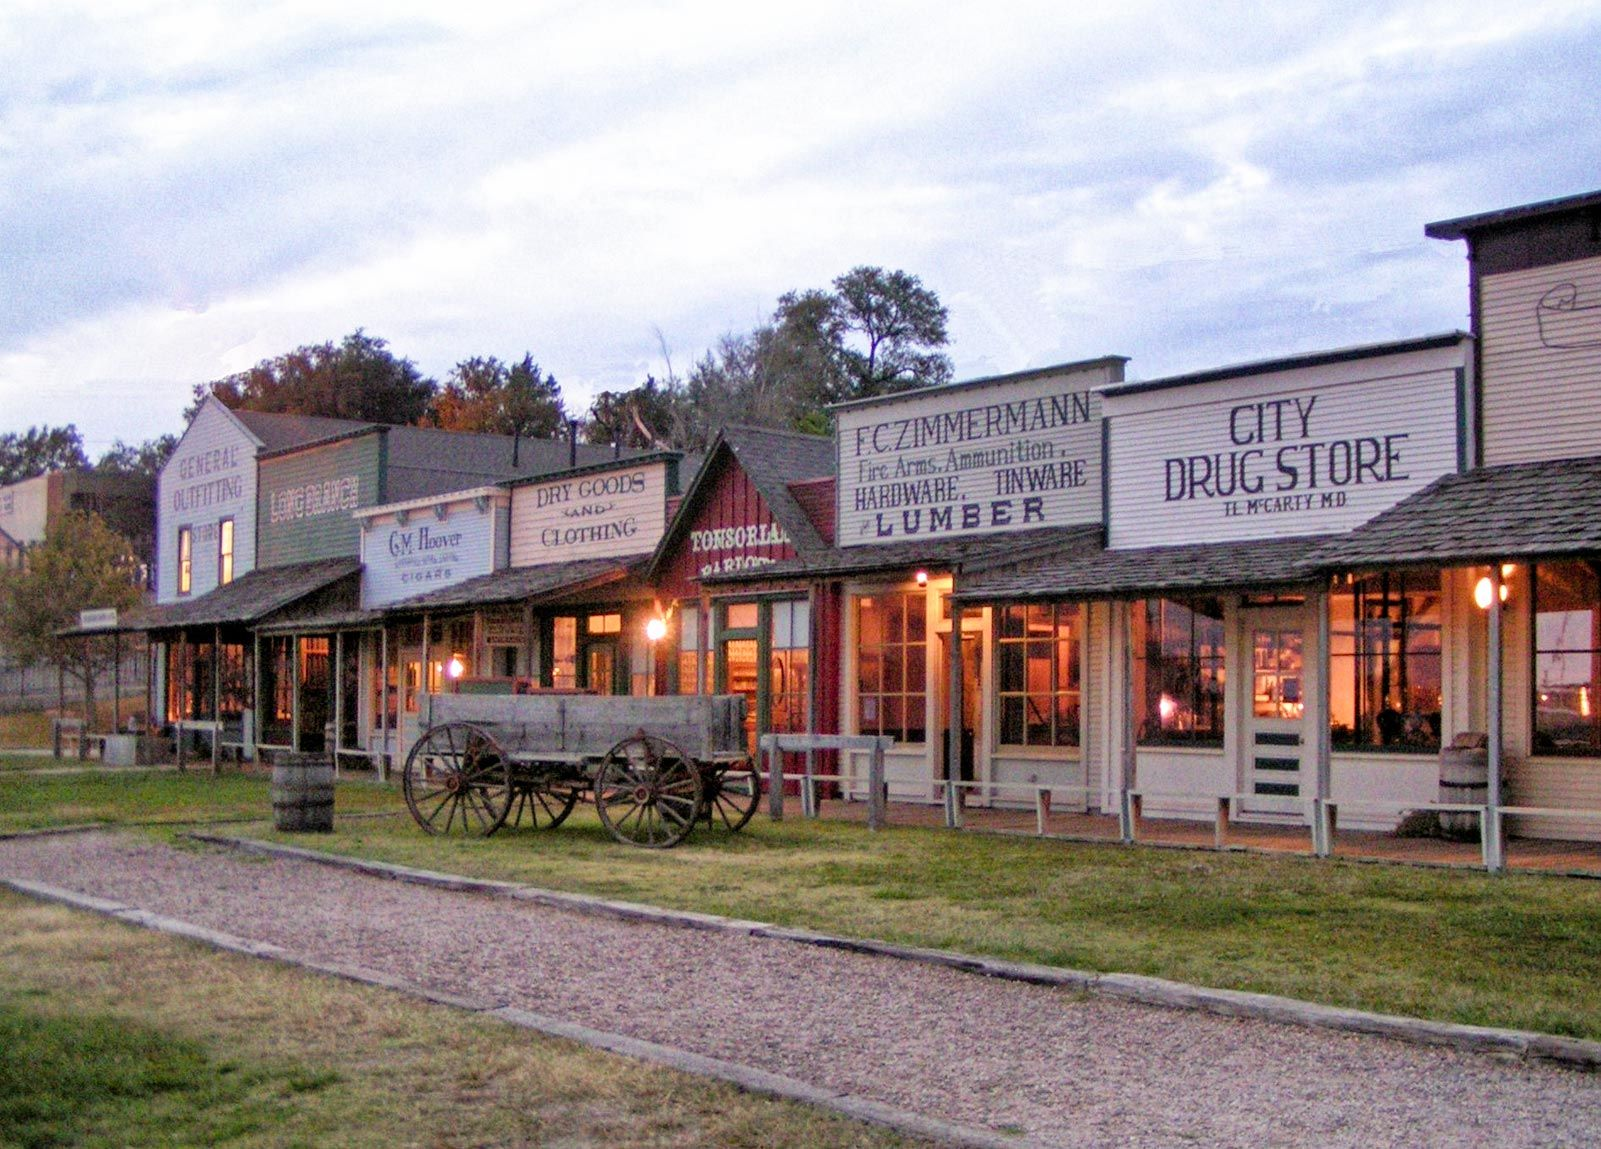 Dodge City Kansas Get Tips On Things To Add Your Travel Itinerary And Start Planning Visit This Historic Frontier Outpost